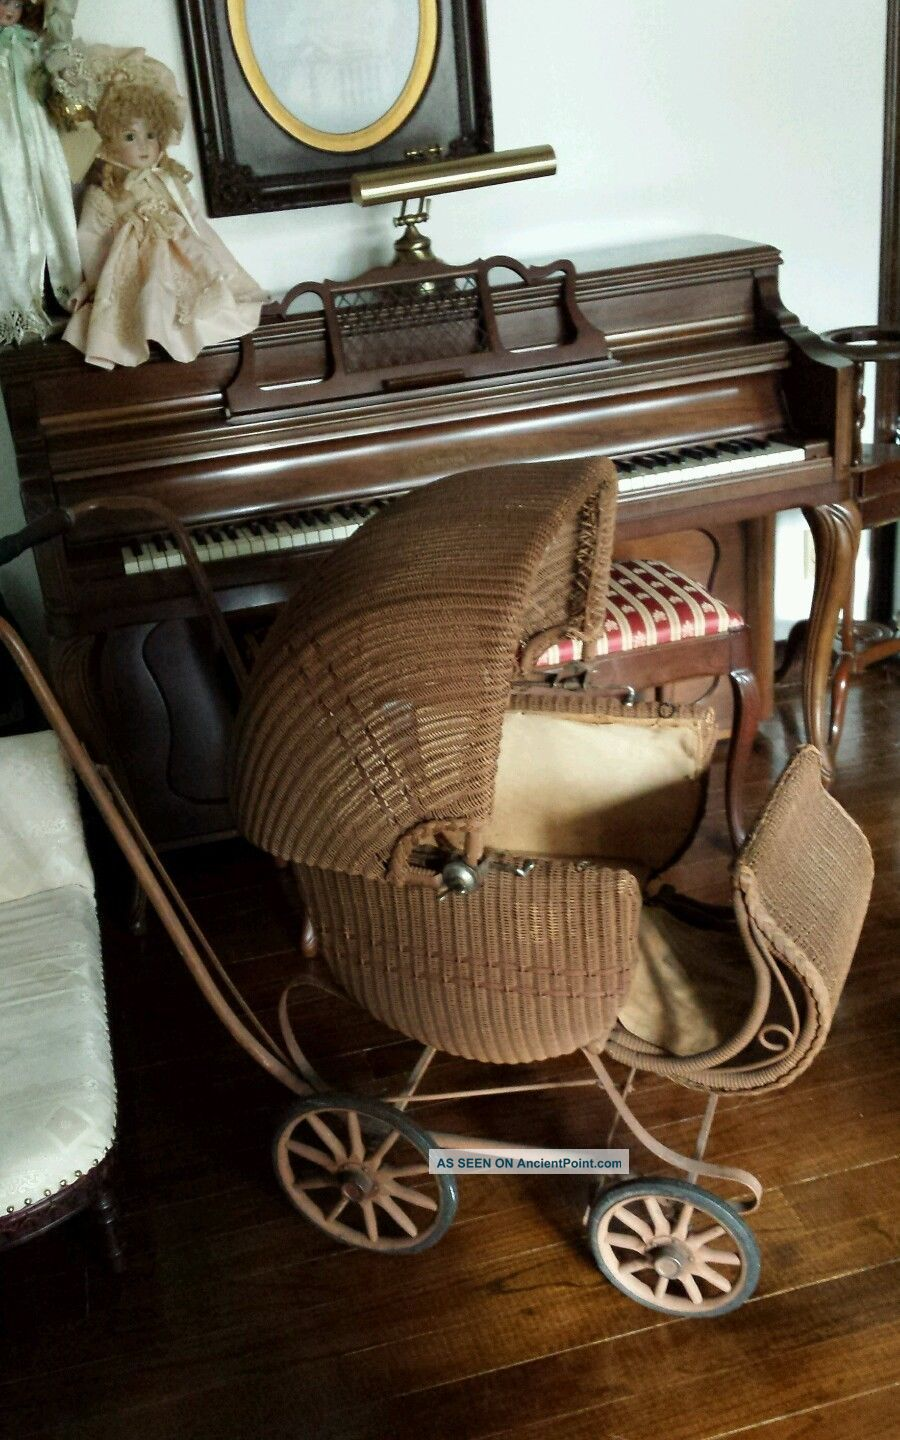 Vintage 1920s Heywood Wakefield Wicker Rattan Baby Stroller Carriage Buggy Baby Carriages & Buggies photo